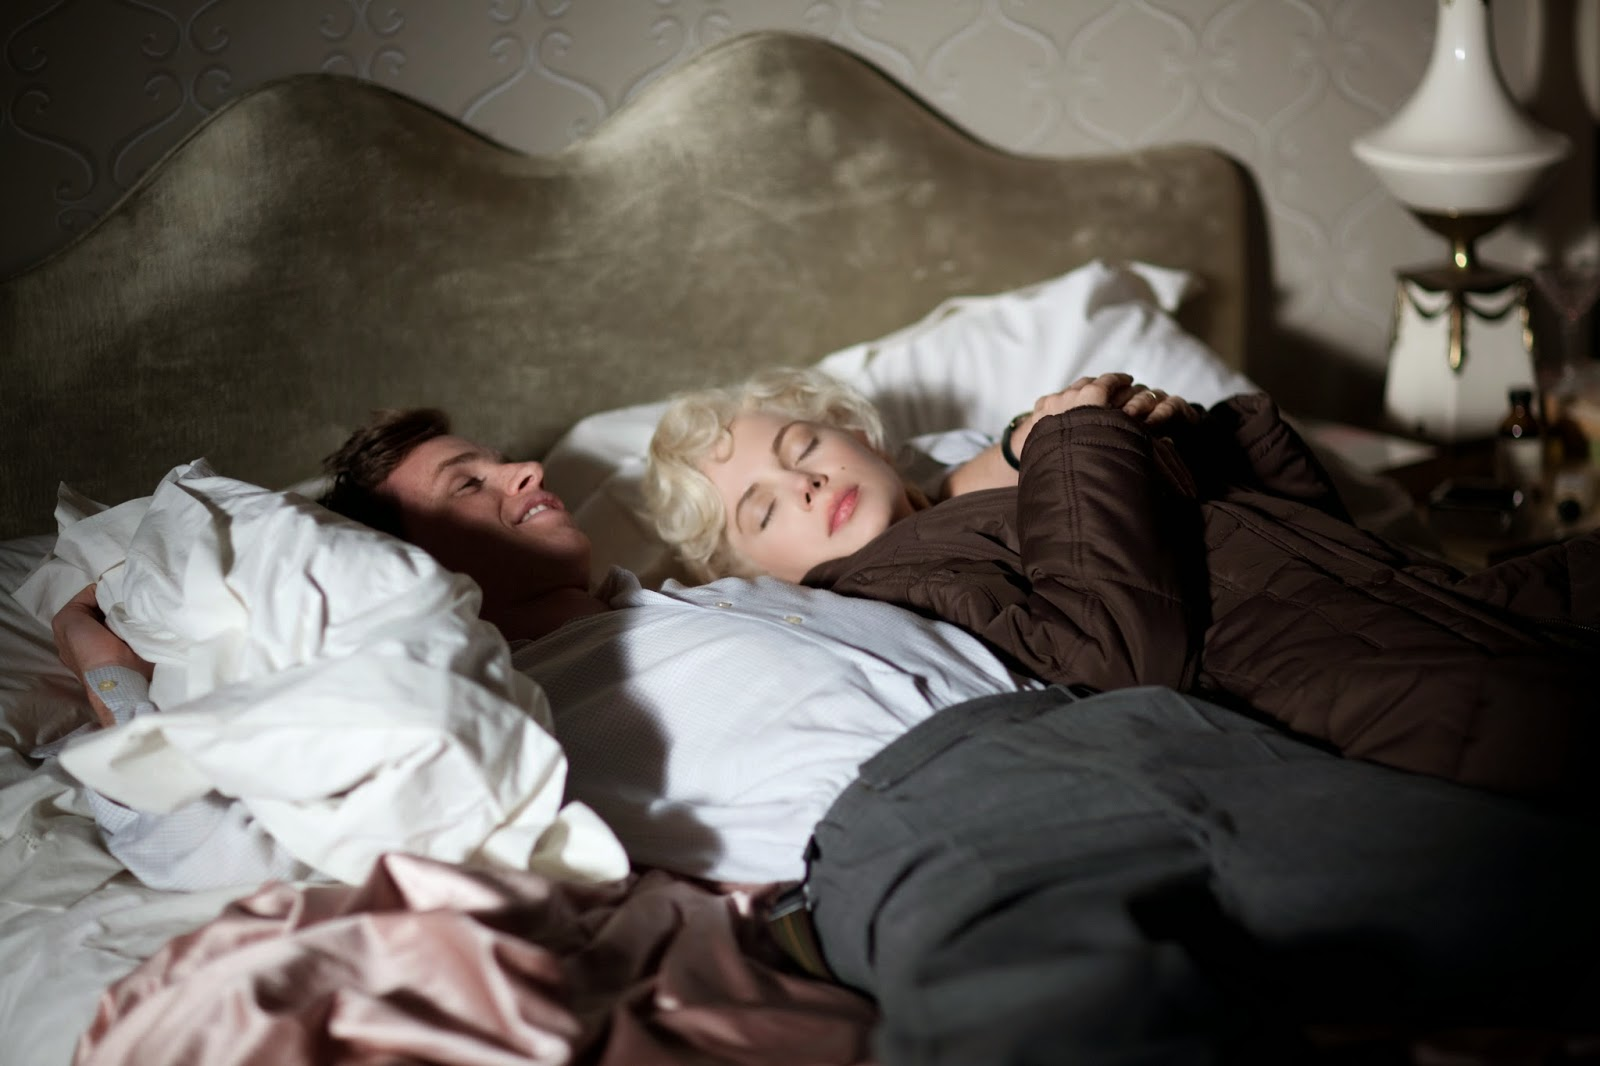 My Week With Marilyn Monroe movie true or fantasy